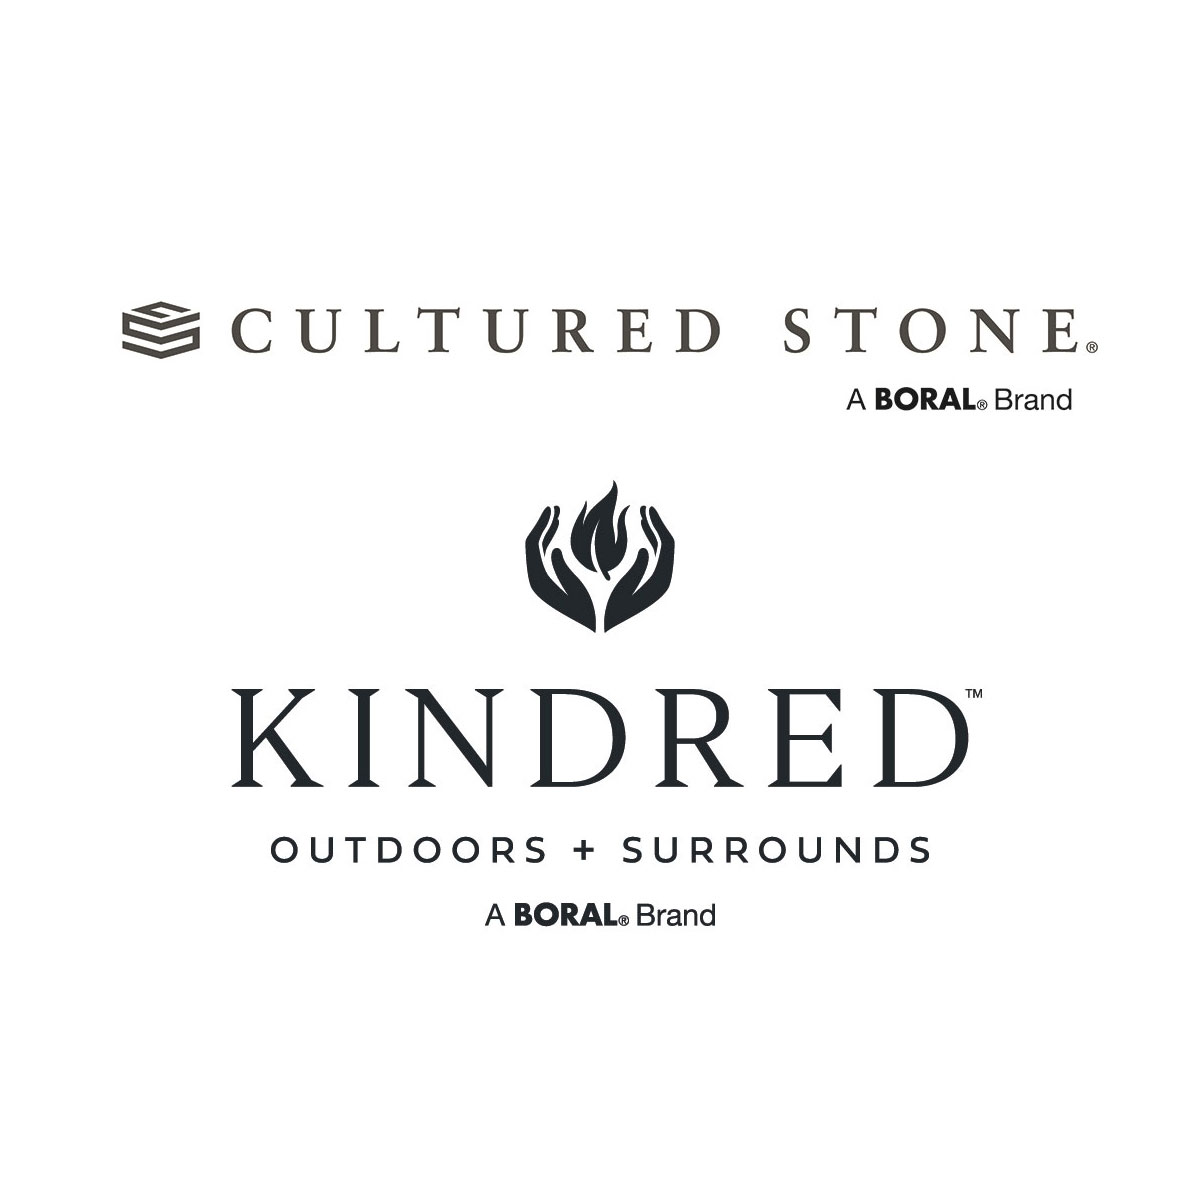 Cultured Stone and Kindred of Boral